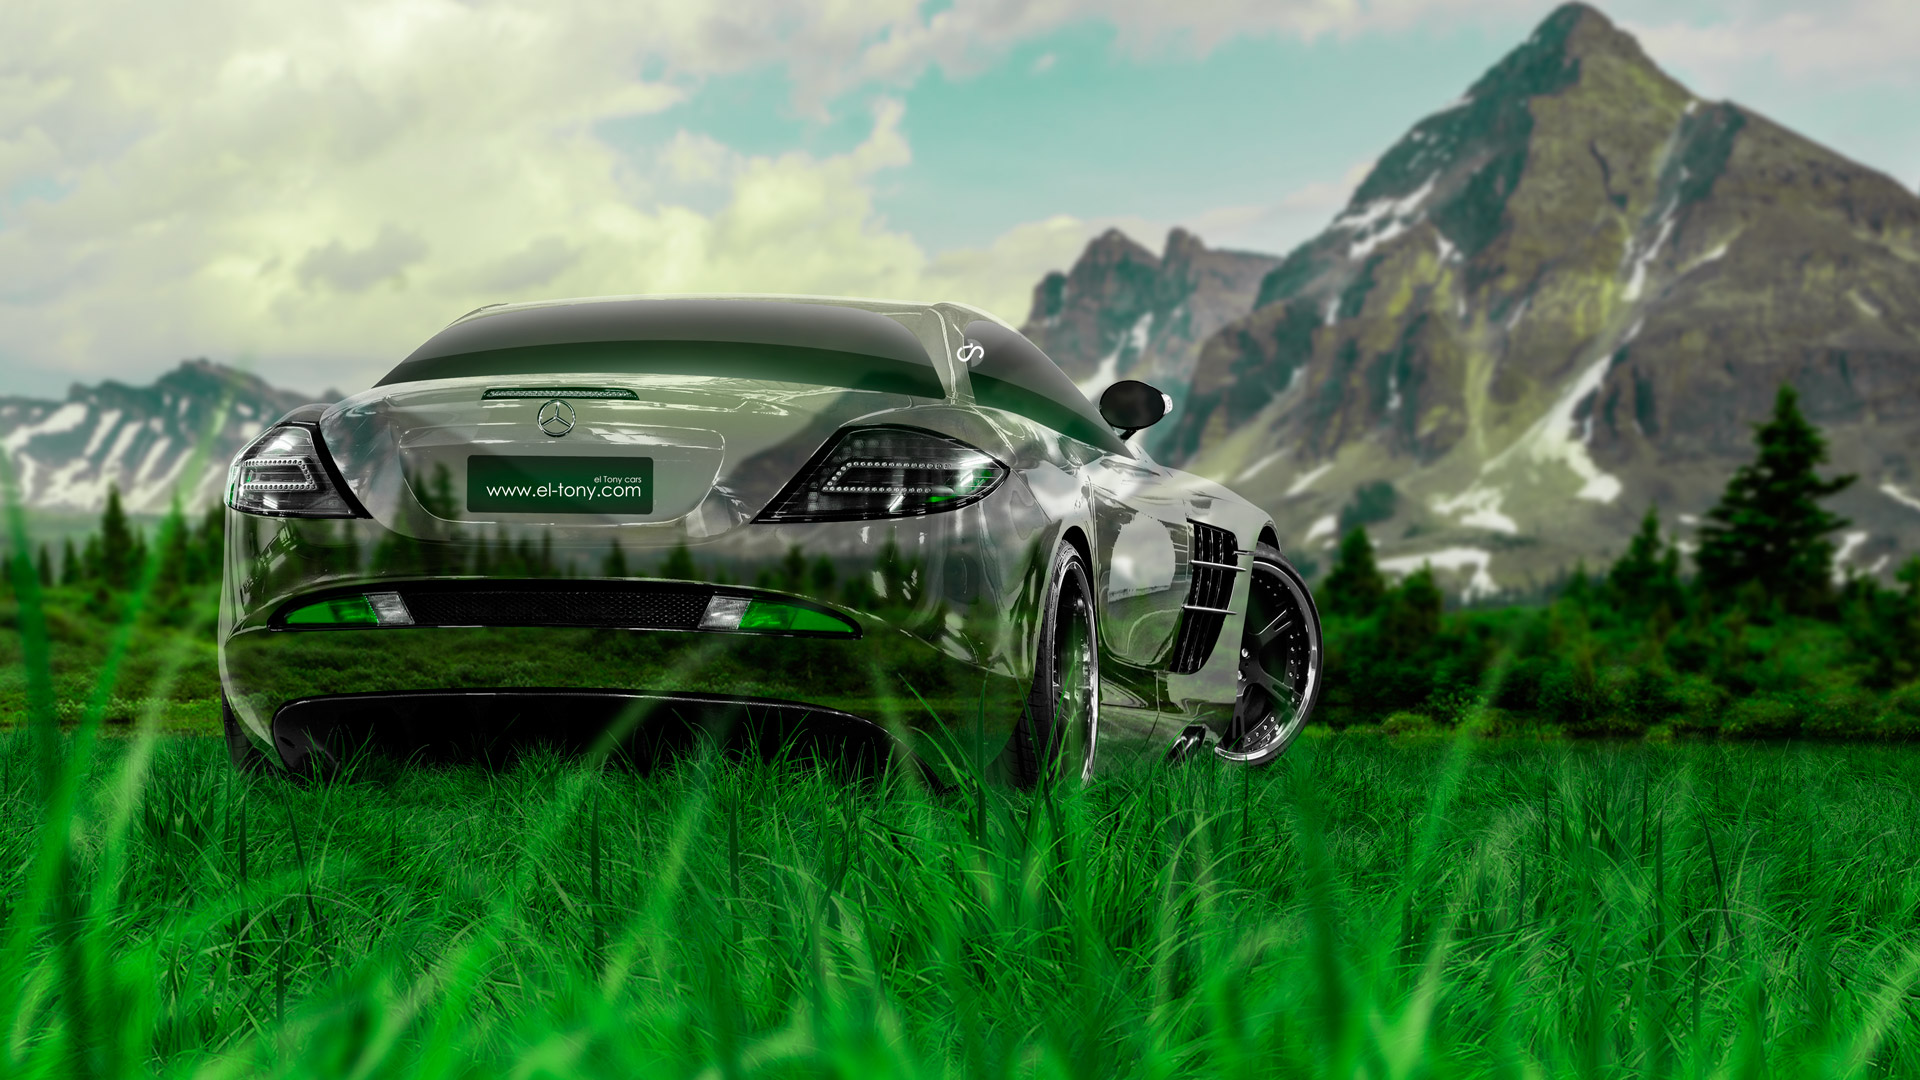 Mercedes-Benz-SLR-McLaren-Crystal-Nature-Car-2014-Art-Green-Grass-HD-Wallpapers-design-by-Tony-Kokhan-[www.el-tony.com]